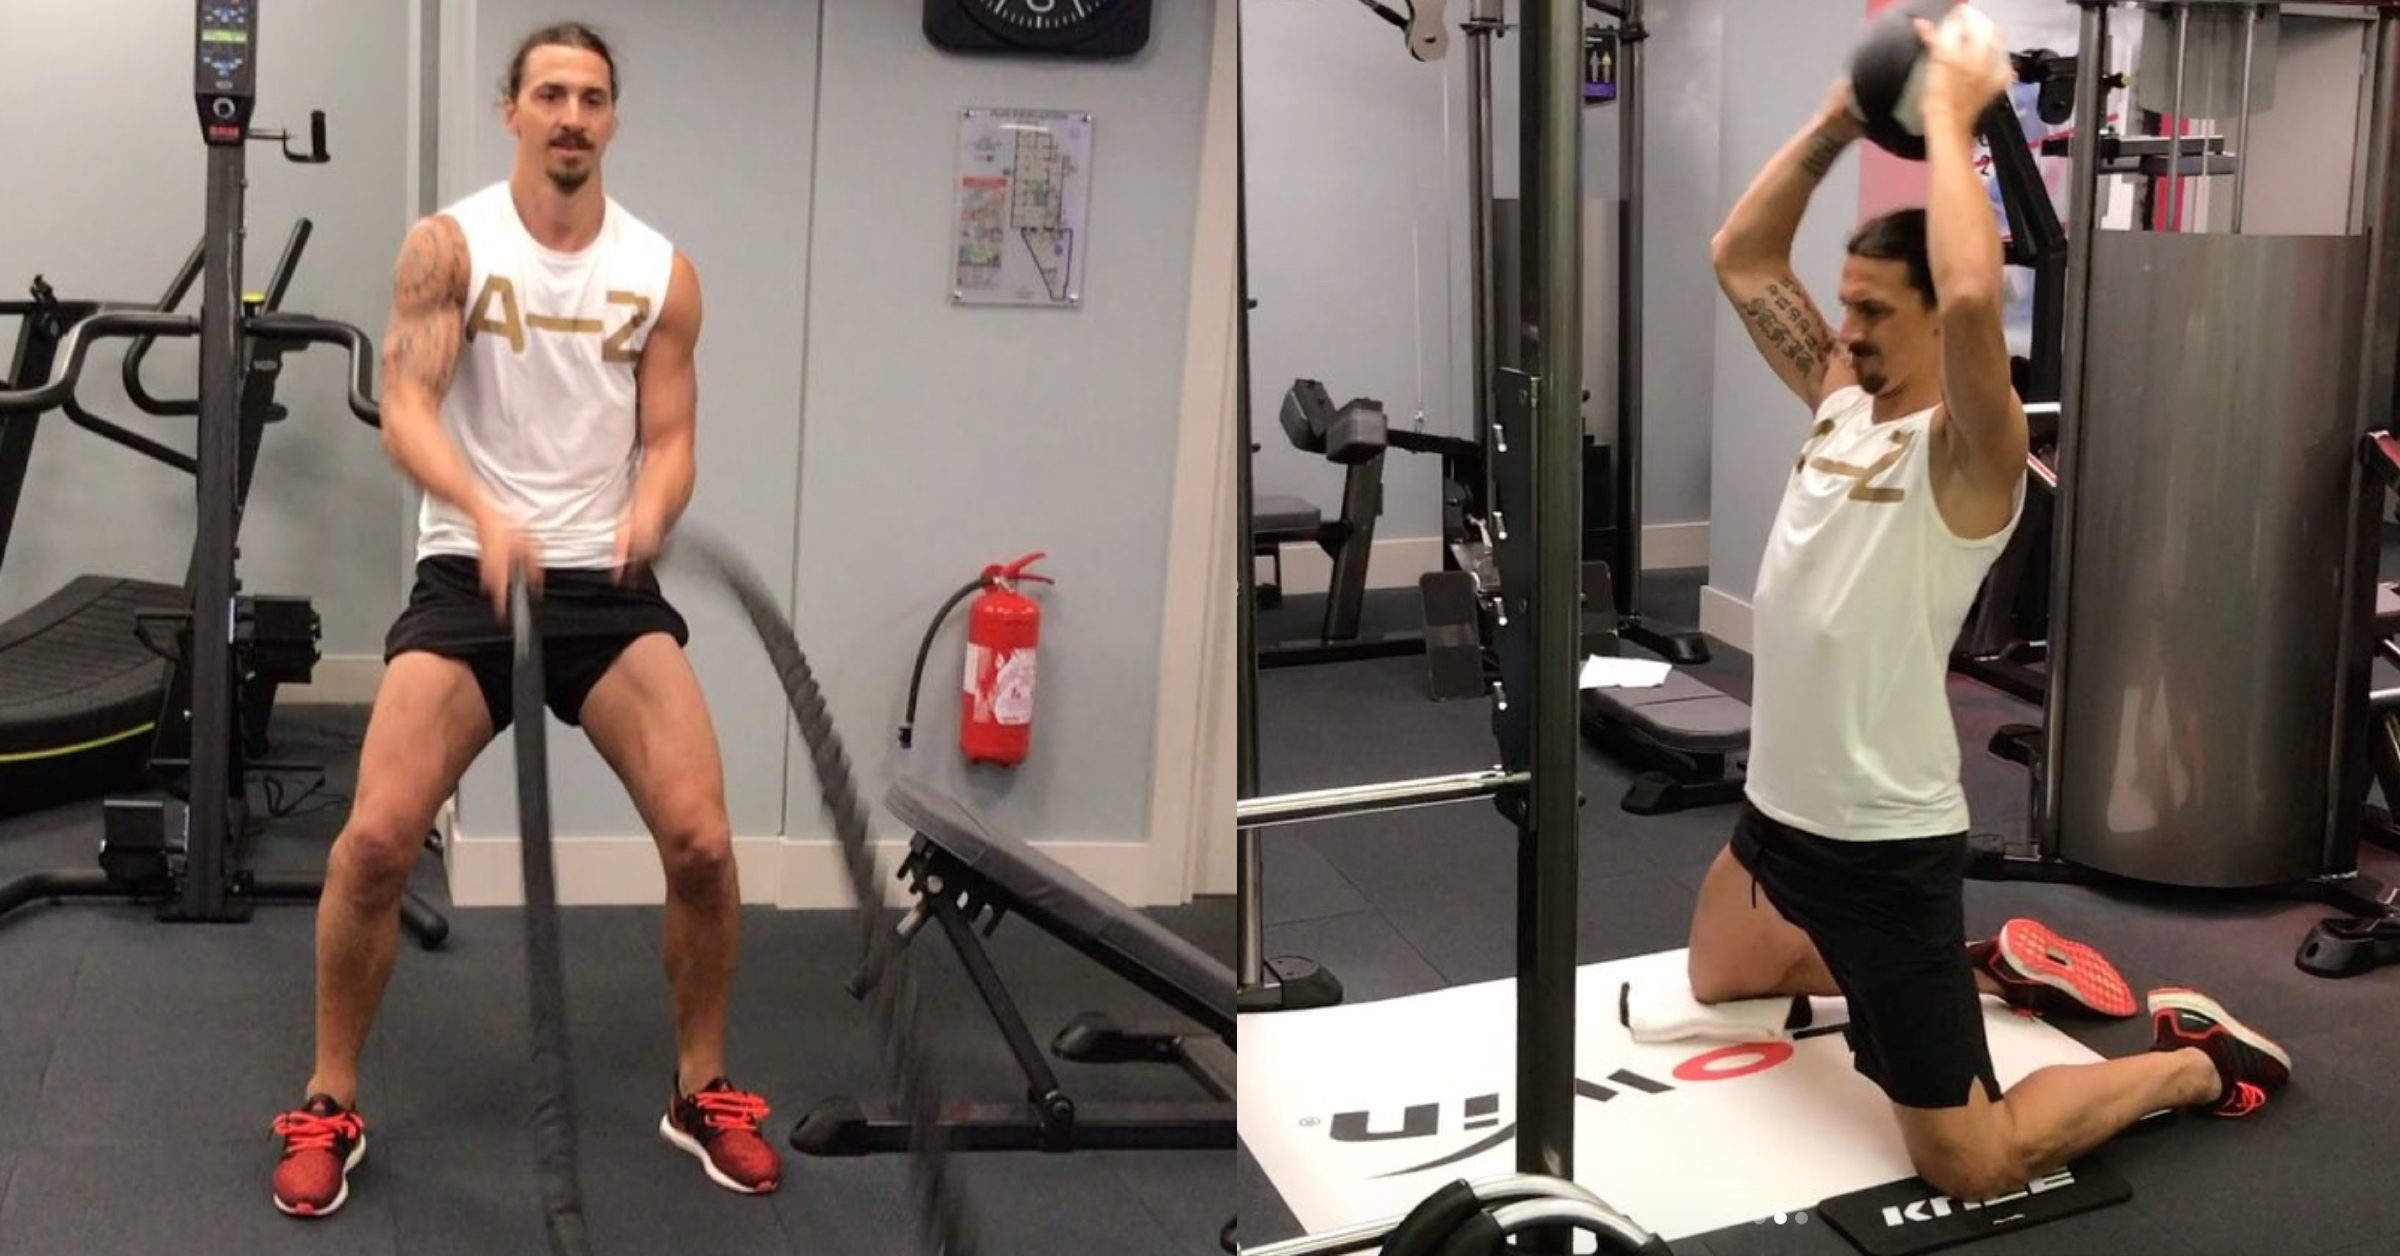 WATCH: Zlatan Ibrahimovic Looks Stronger Than Ever In His Latest Workout Posts